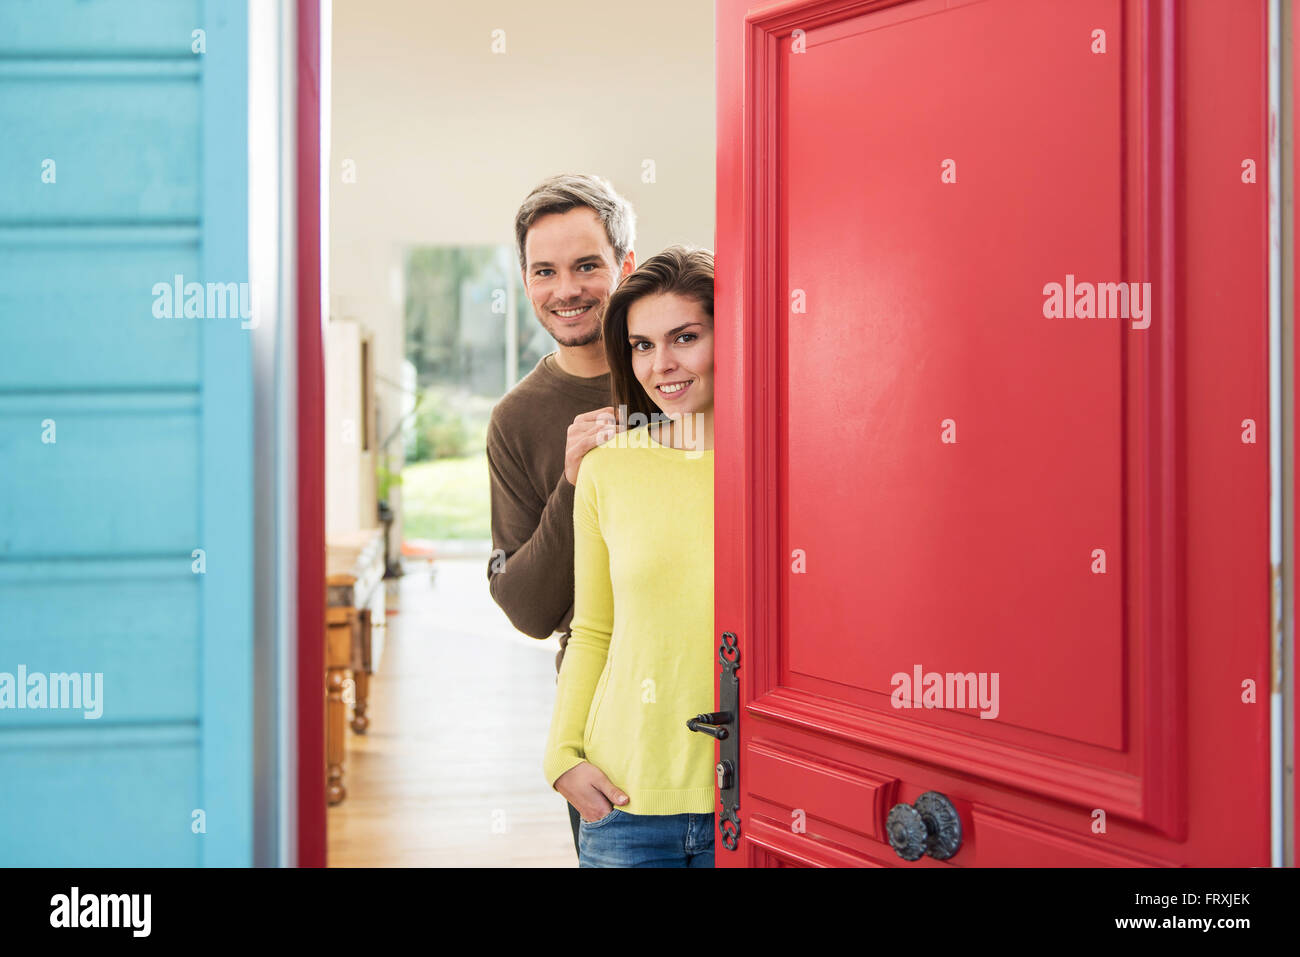 A grey hair man with beard and a woman are opening the red door of their wooden house to welcome some guests. The - Stock Image